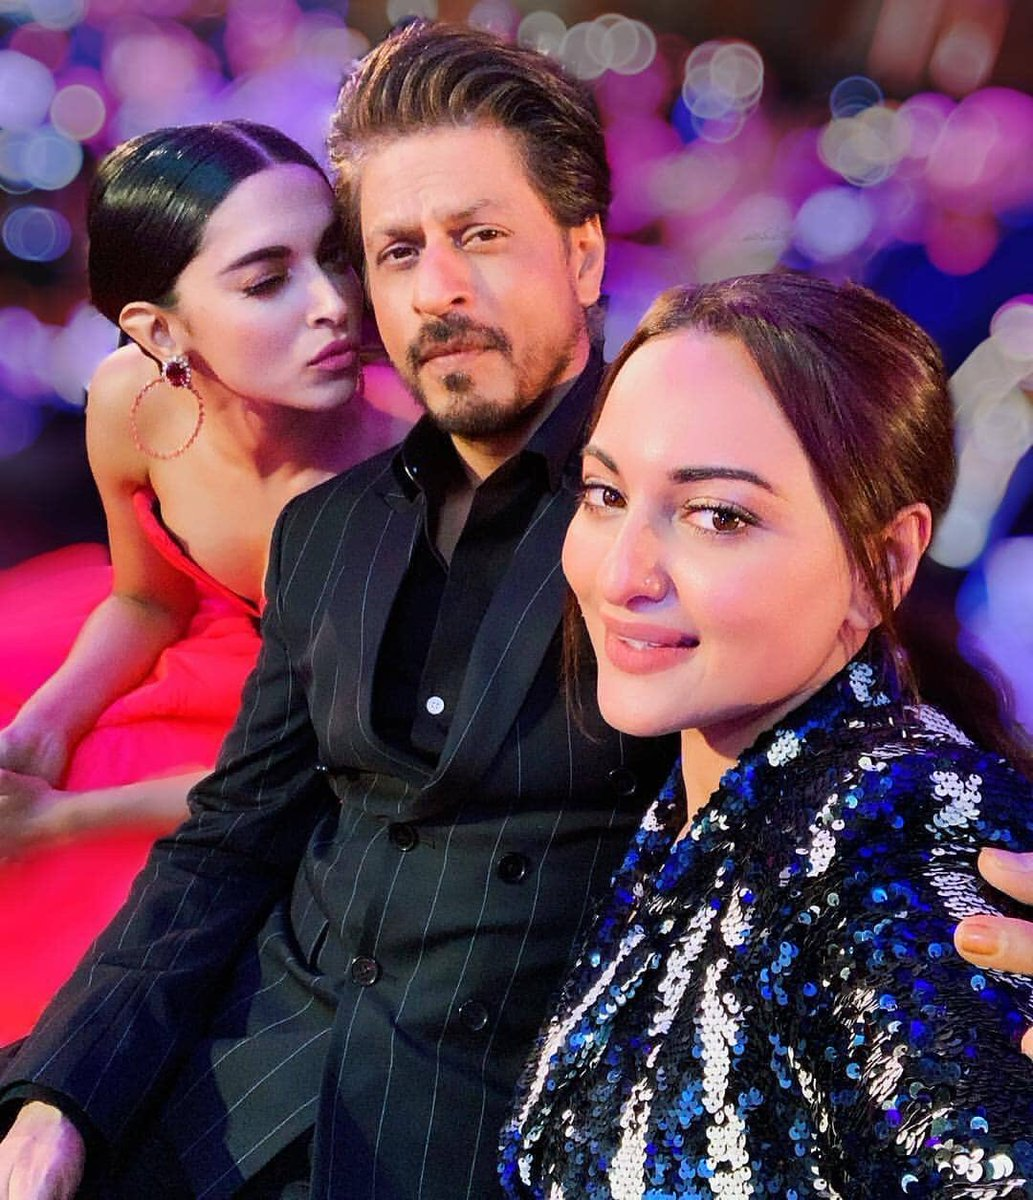 King Khan @iamsrk with @deepikapadukone and @sonakshisinha at  #FilmfareGlamourAndStyleAwards #GlamourAndStyleAwads 2019  https://www. instagram.com/p/Bt0BGBmgYfN/ ?utm_source=ig_share_sheet&igshid=ttdwi575075u   … <br>http://pic.twitter.com/HXWa2nGbt1